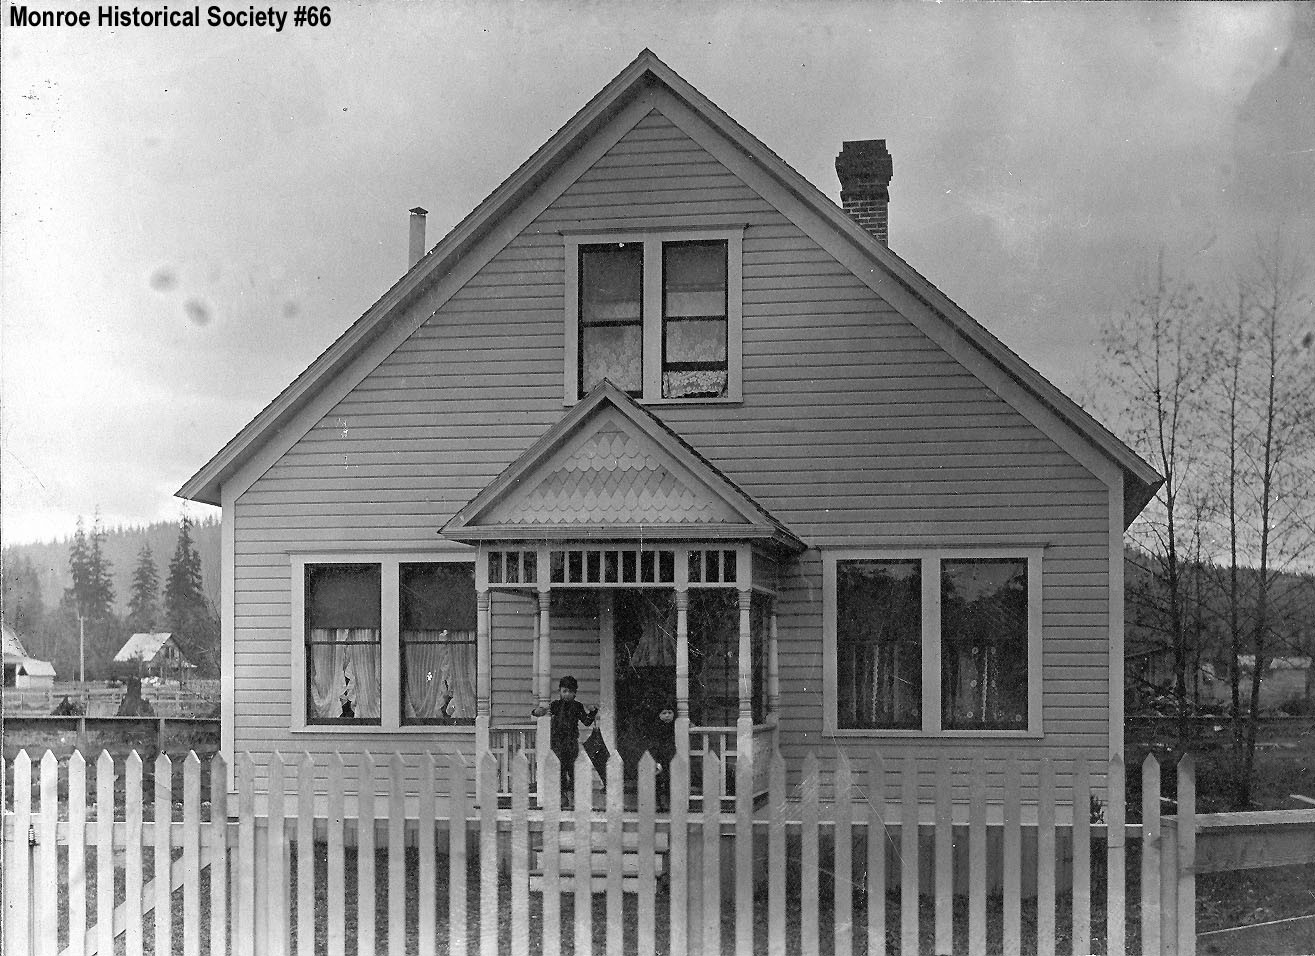 0066 – House at 317 South Blakely built in 1916